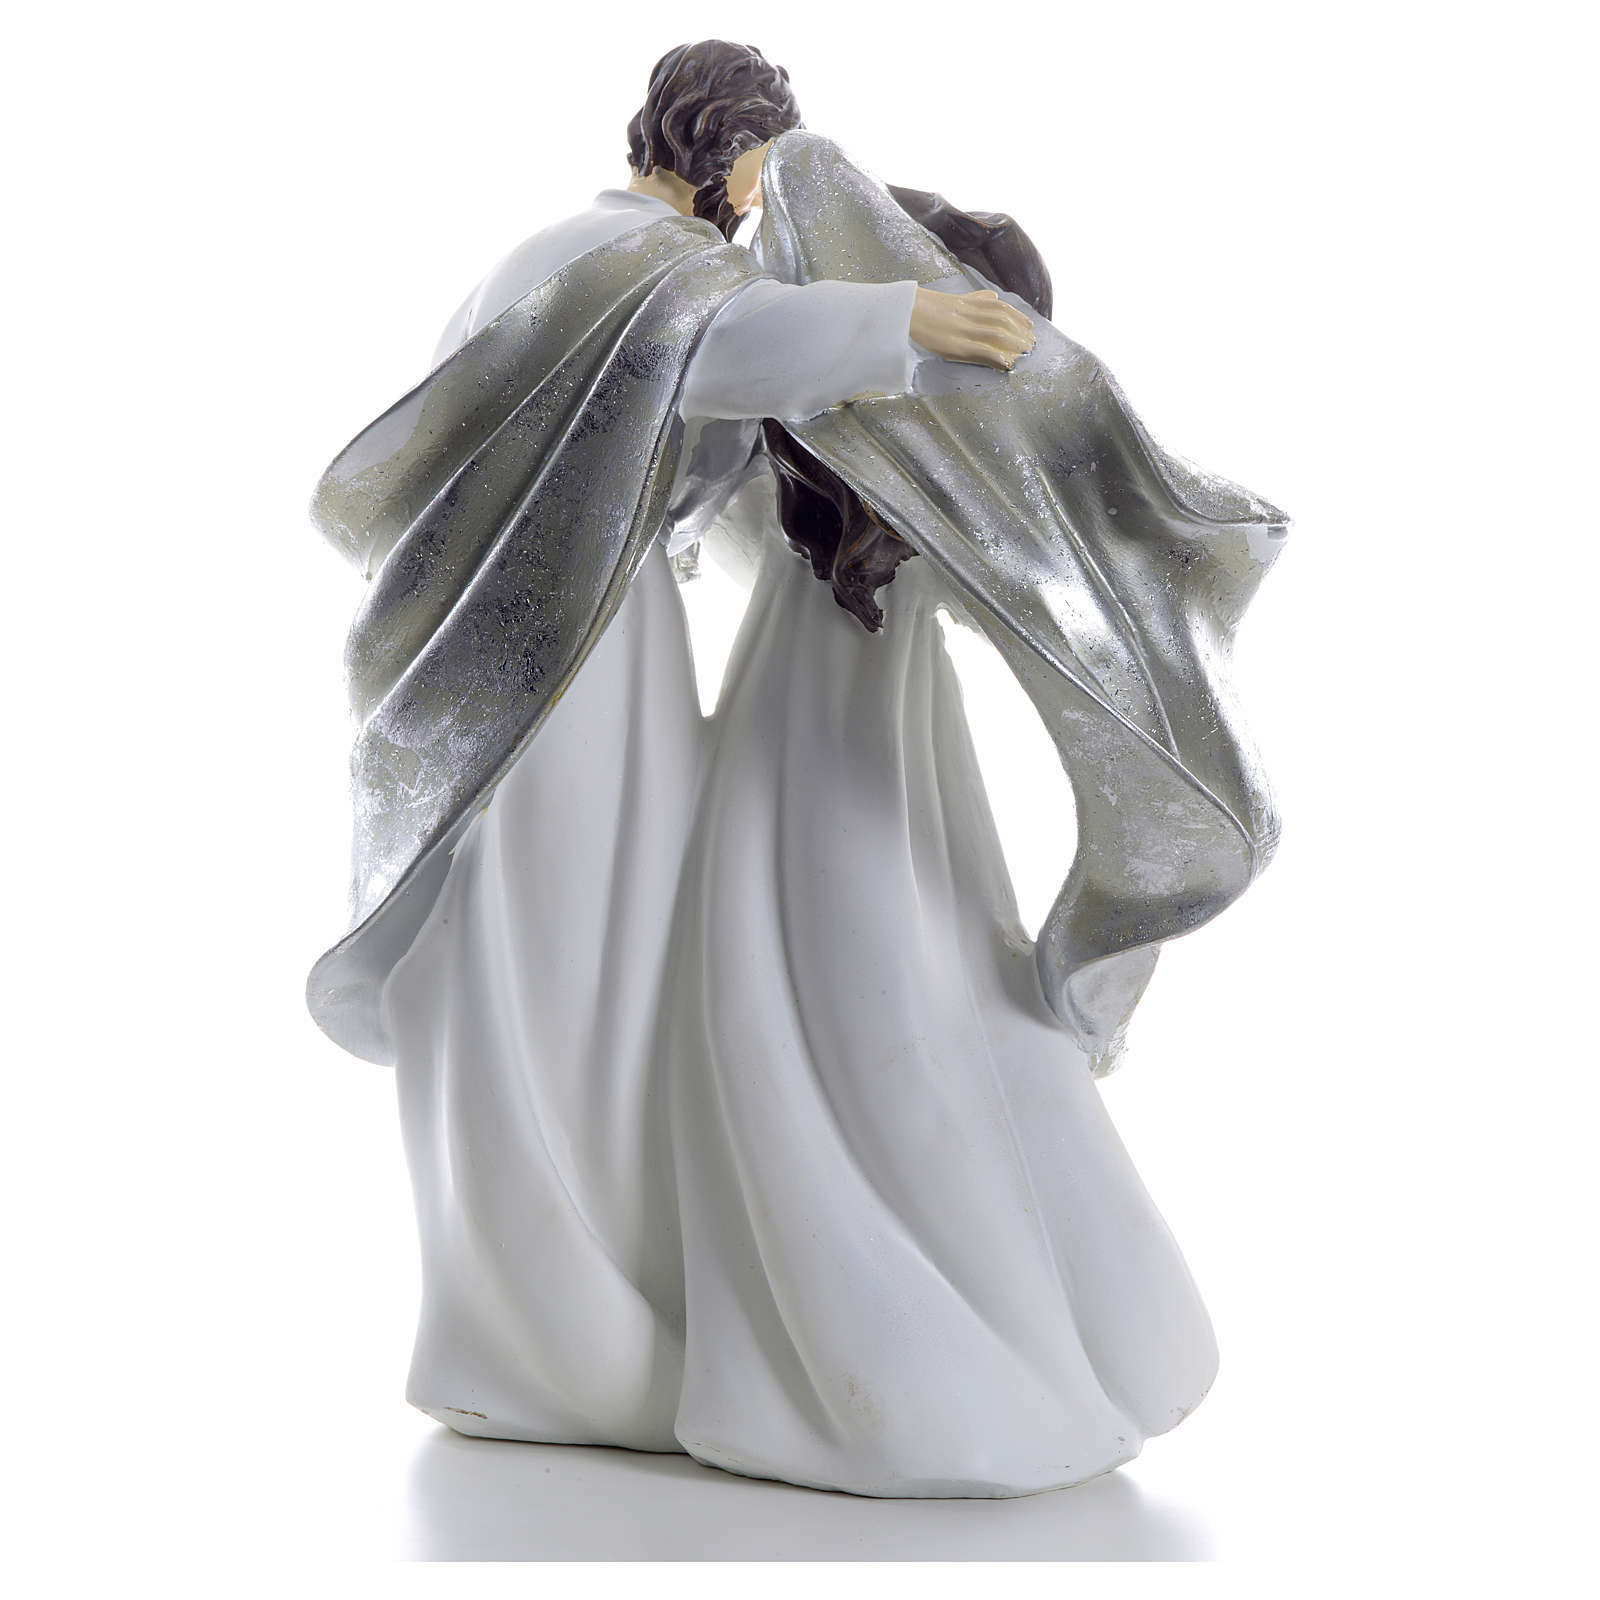 Nativity scene 41cm, Silver resin 3